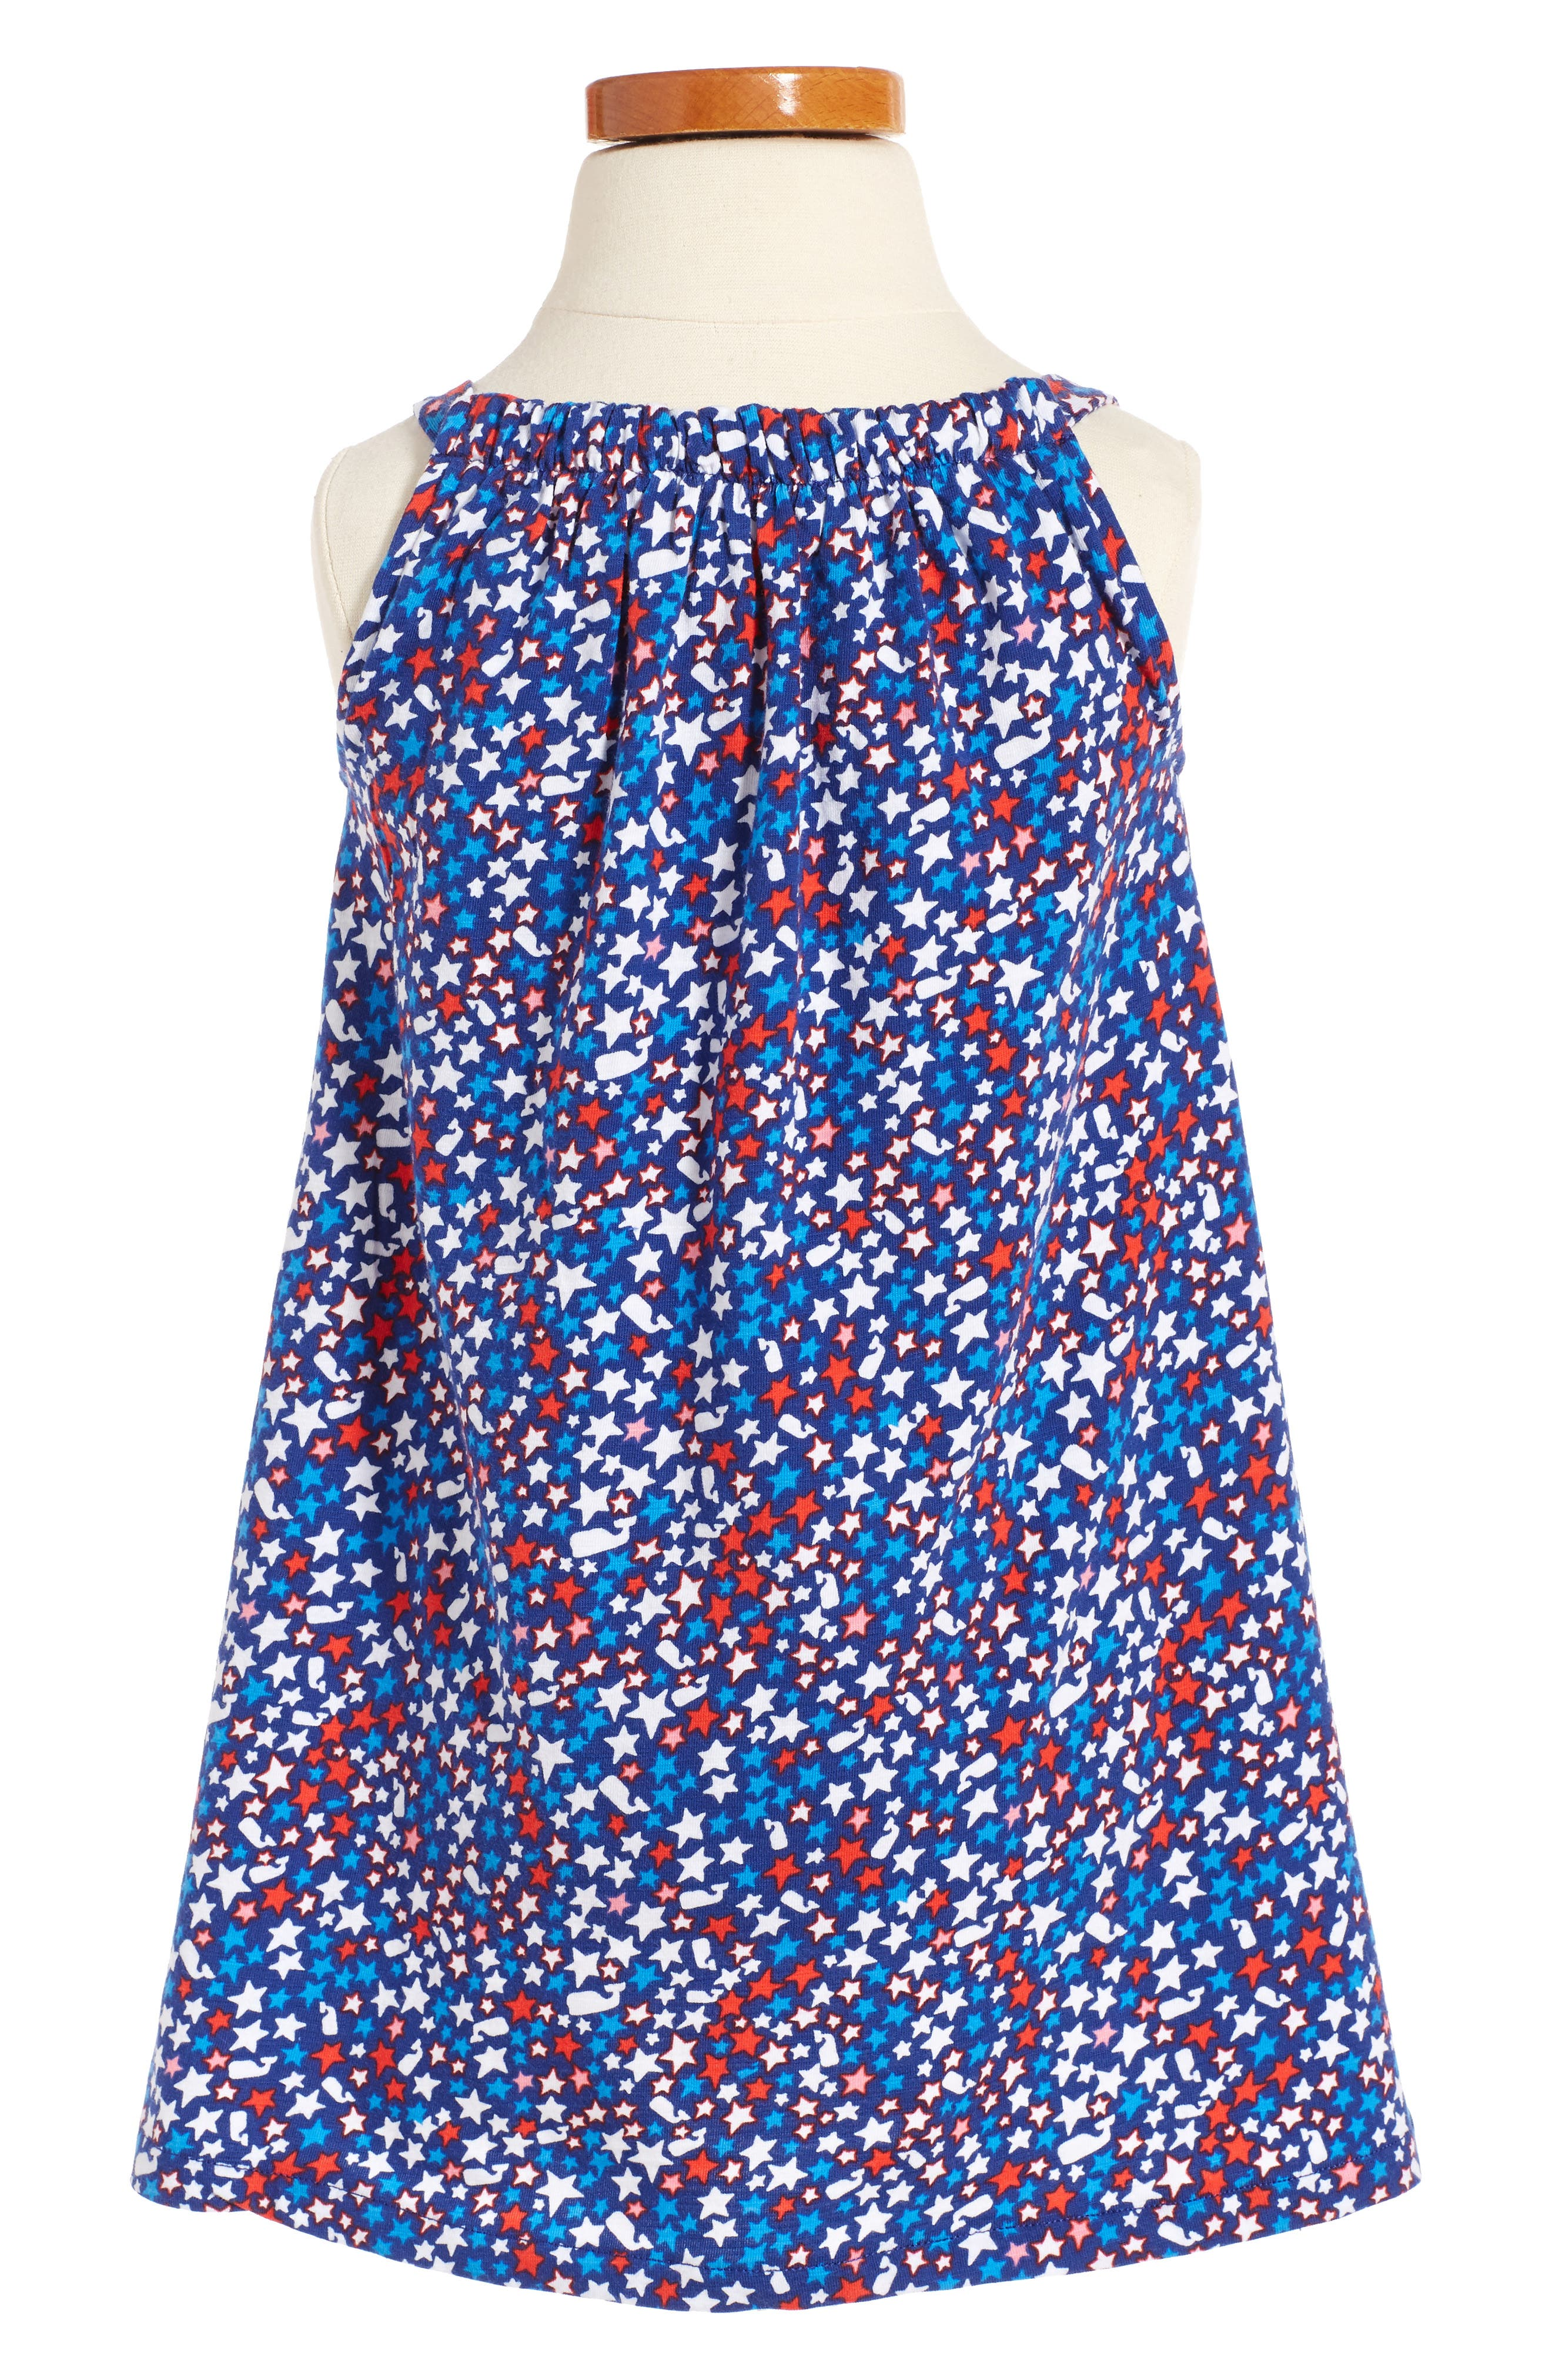 Stars & Whales Shift Dress,                         Main,                         color, 400